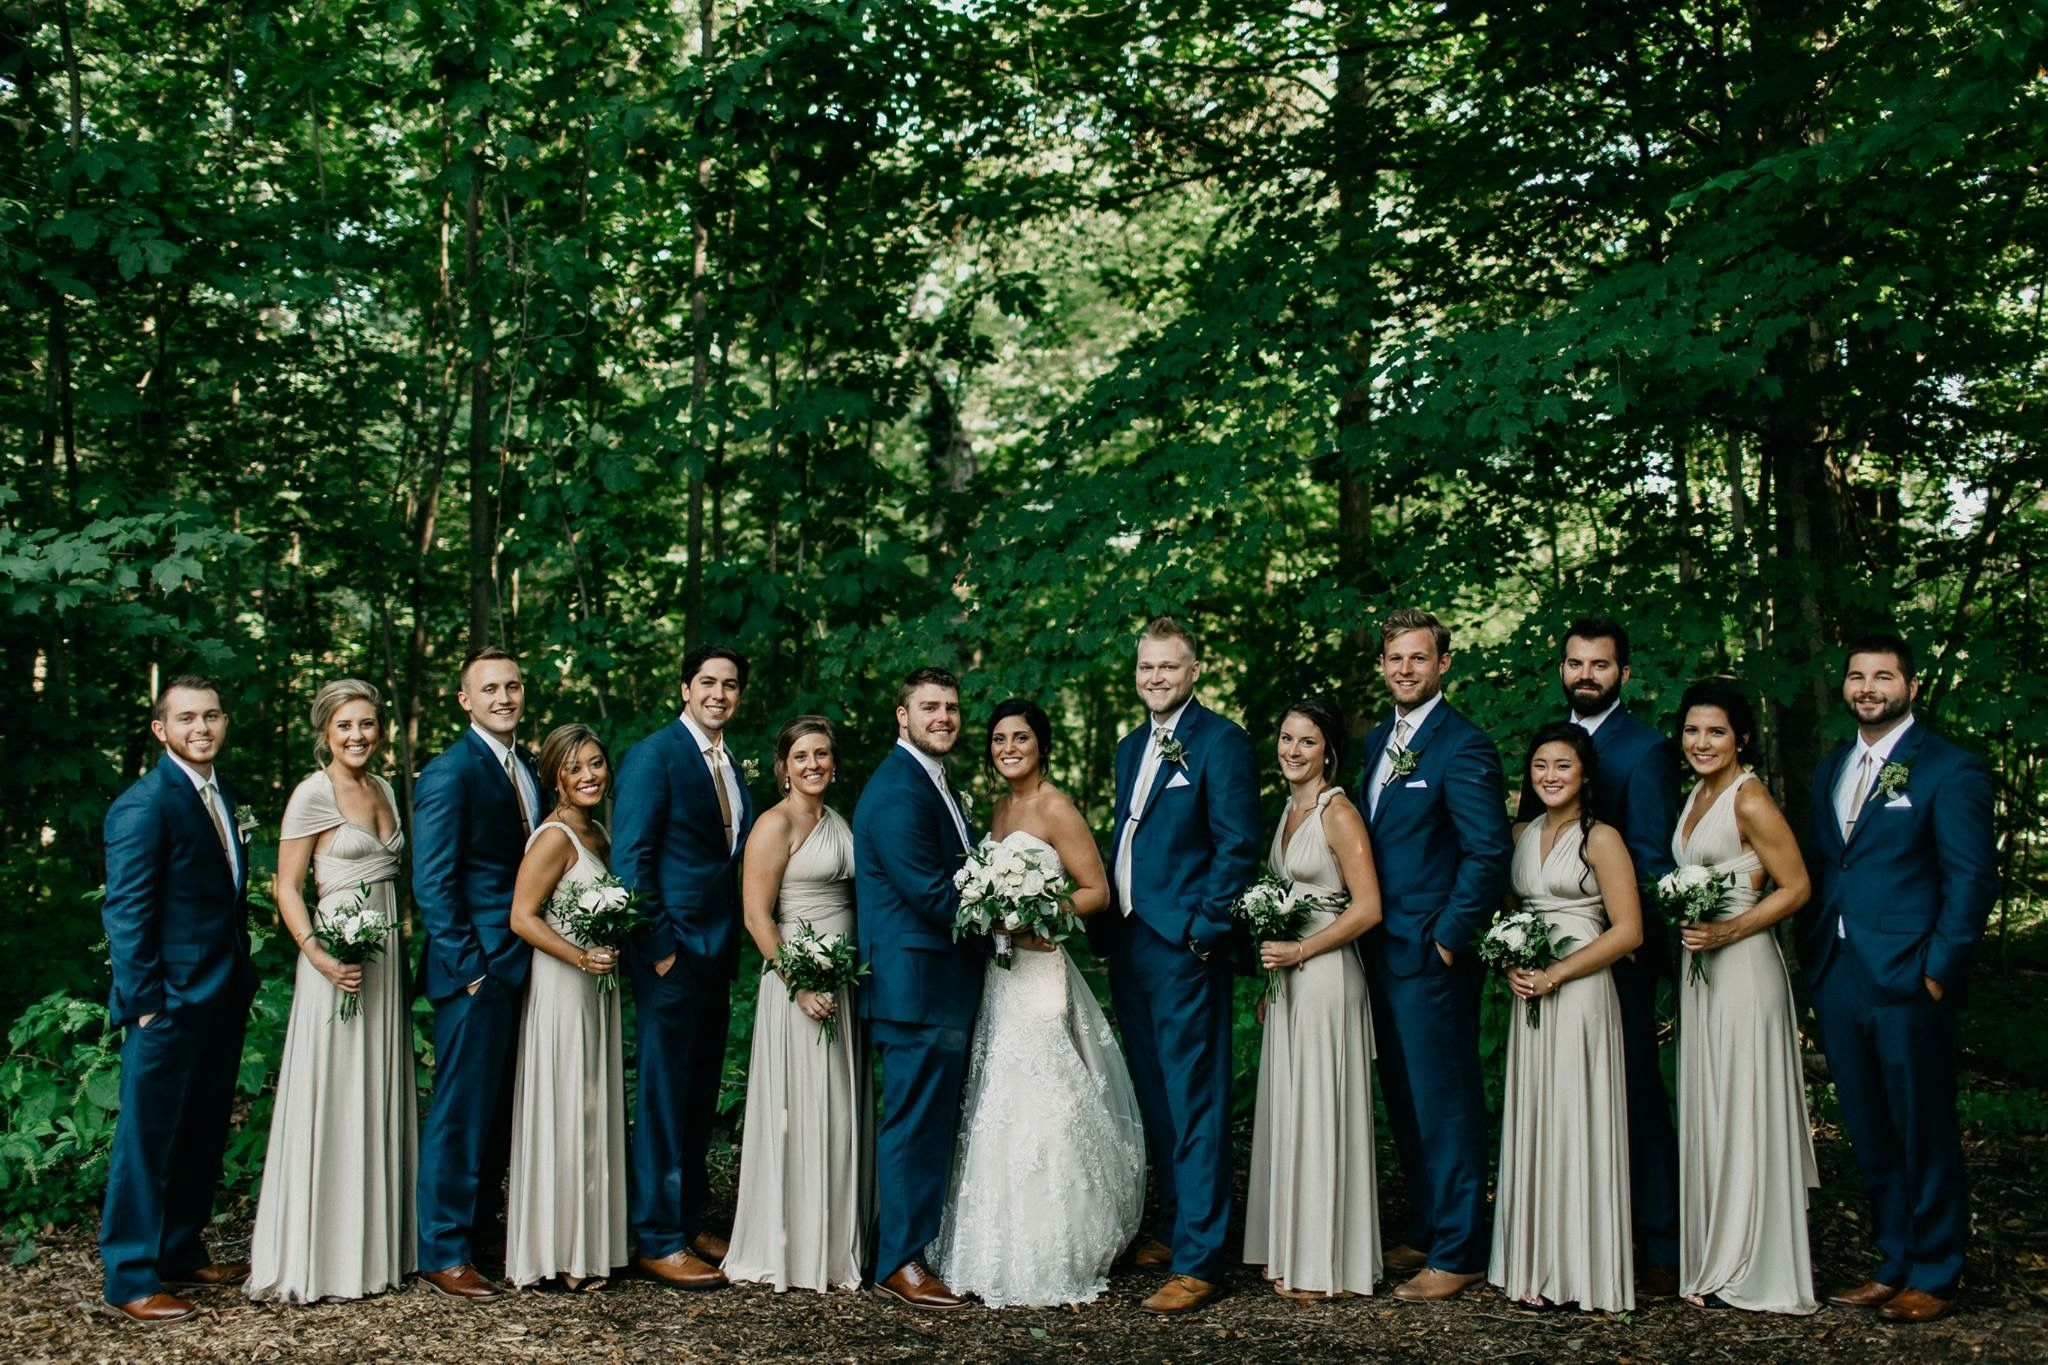 Rustic Outdoor Wedding. Bridal Party. Groomsmen And